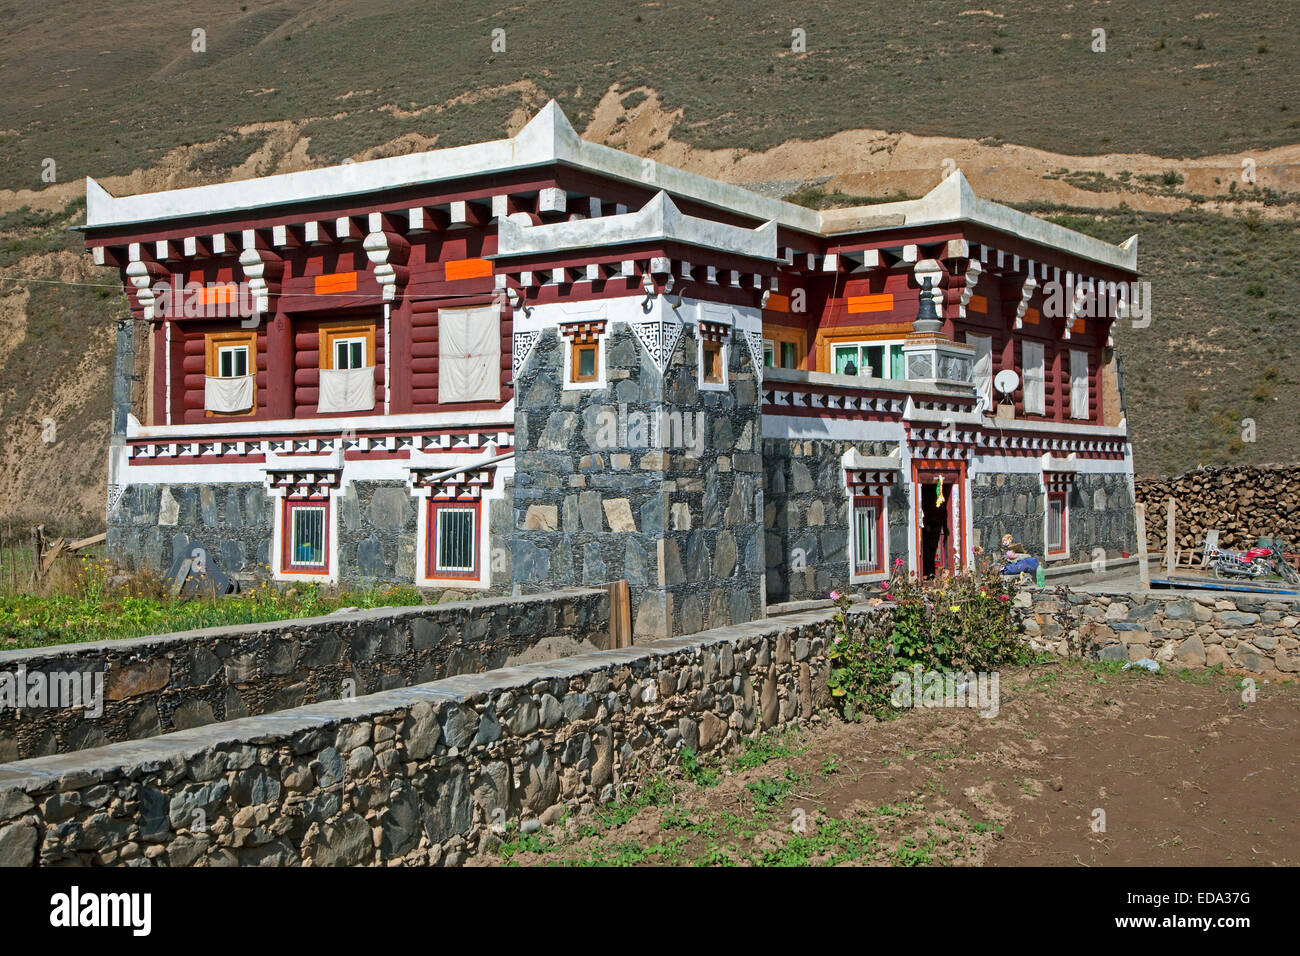 Tibetan architecture on countryside showing modern granite house with typical flat roof and little watchtower, Sichuan, - Stock Image